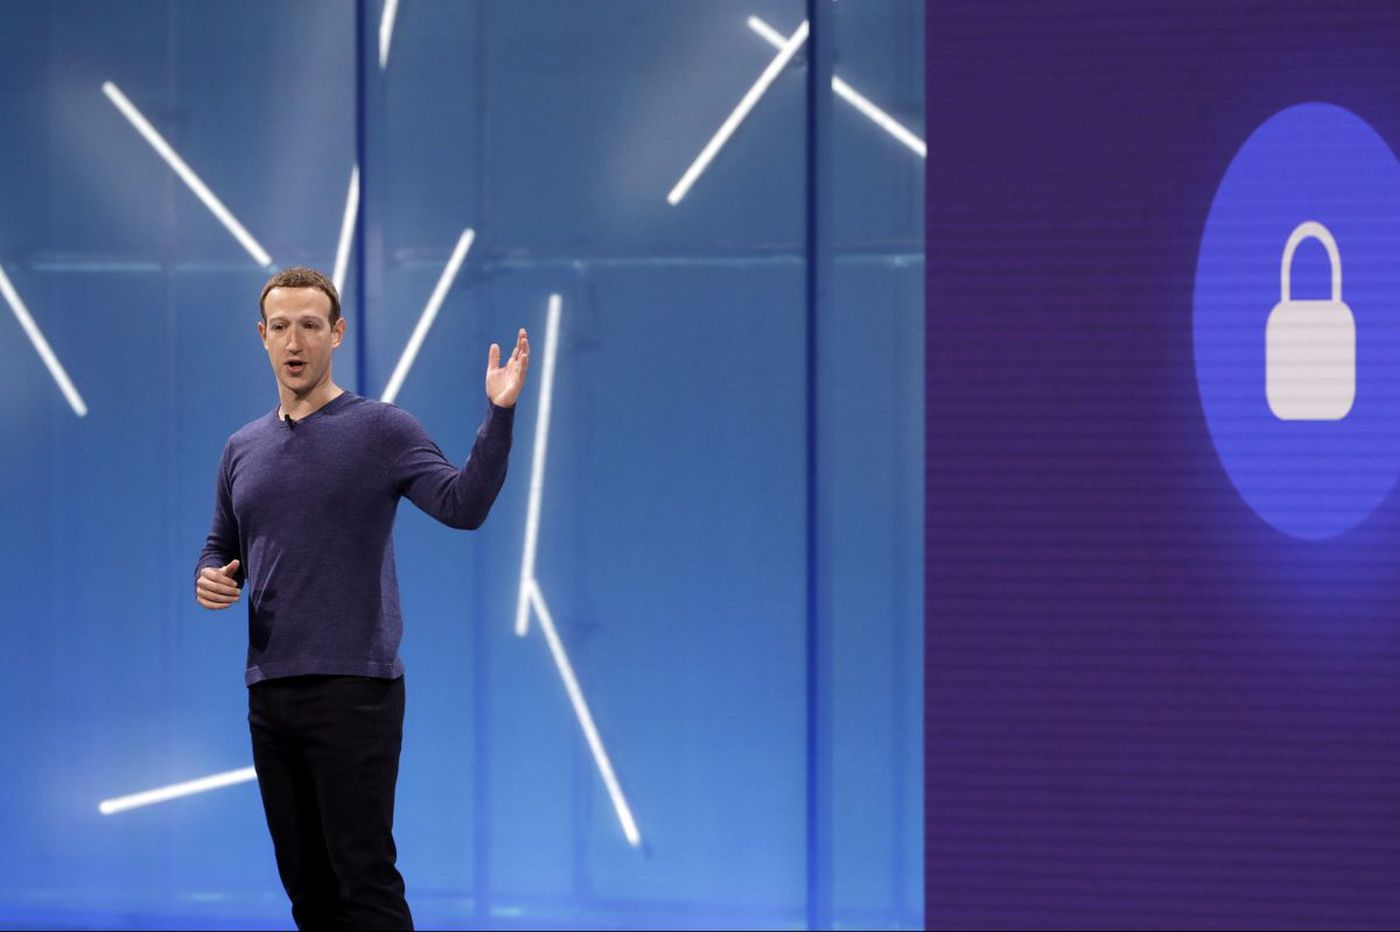 How will Vanguard vote on privacy at Facebook's May 31 shareholder meeting?